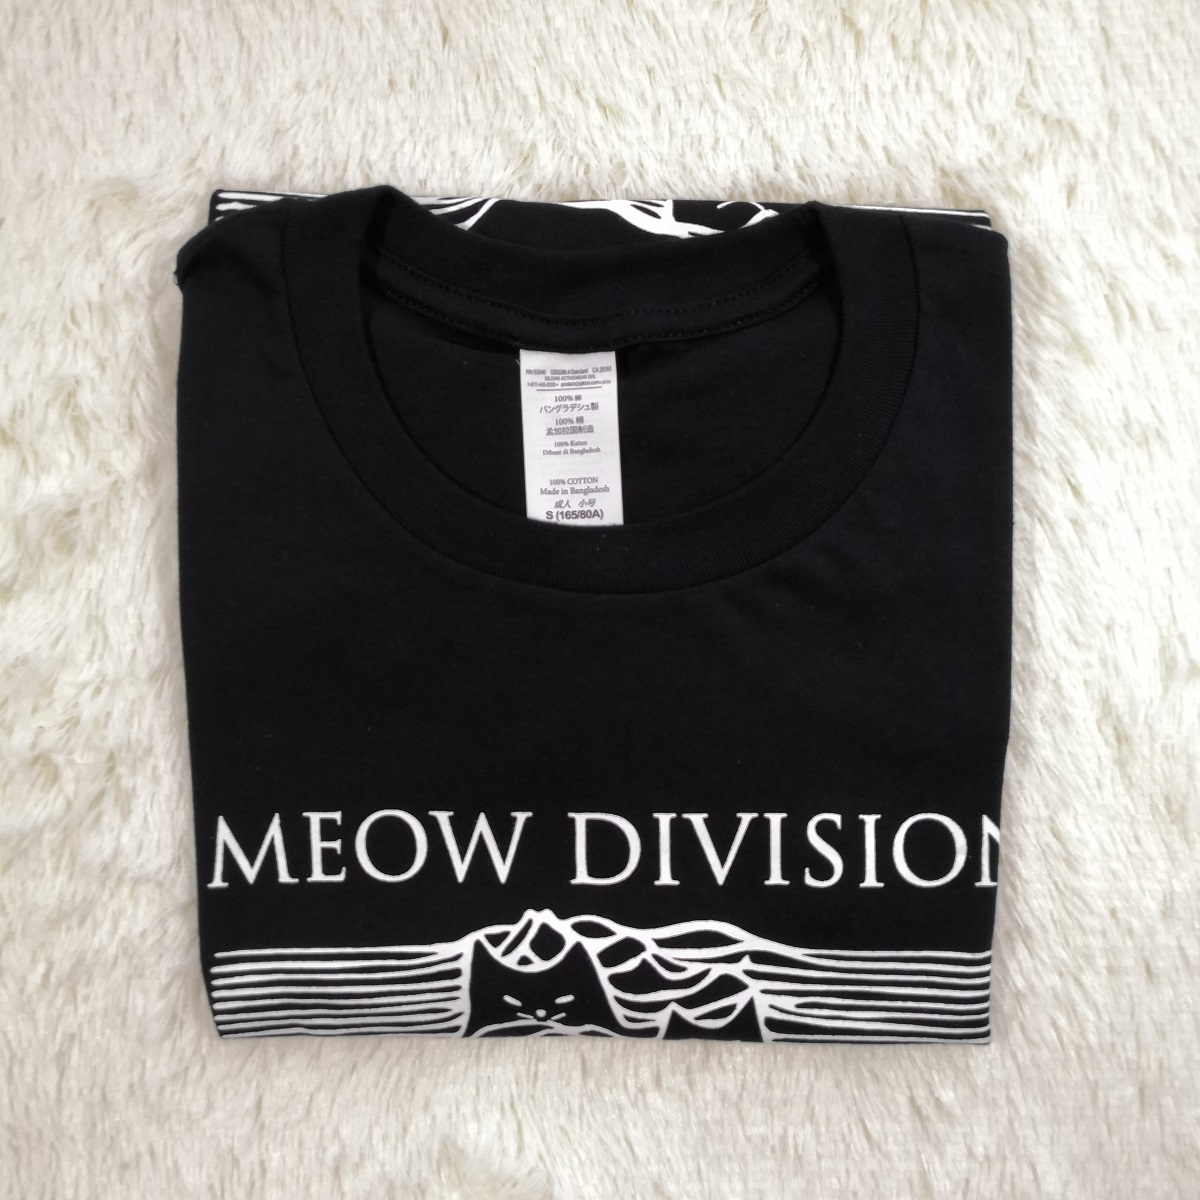 Hillbilly Funny Meow Division Letters Women Cat tshirt Oversize t shirt Summer Top Harajuku Short Sleeved